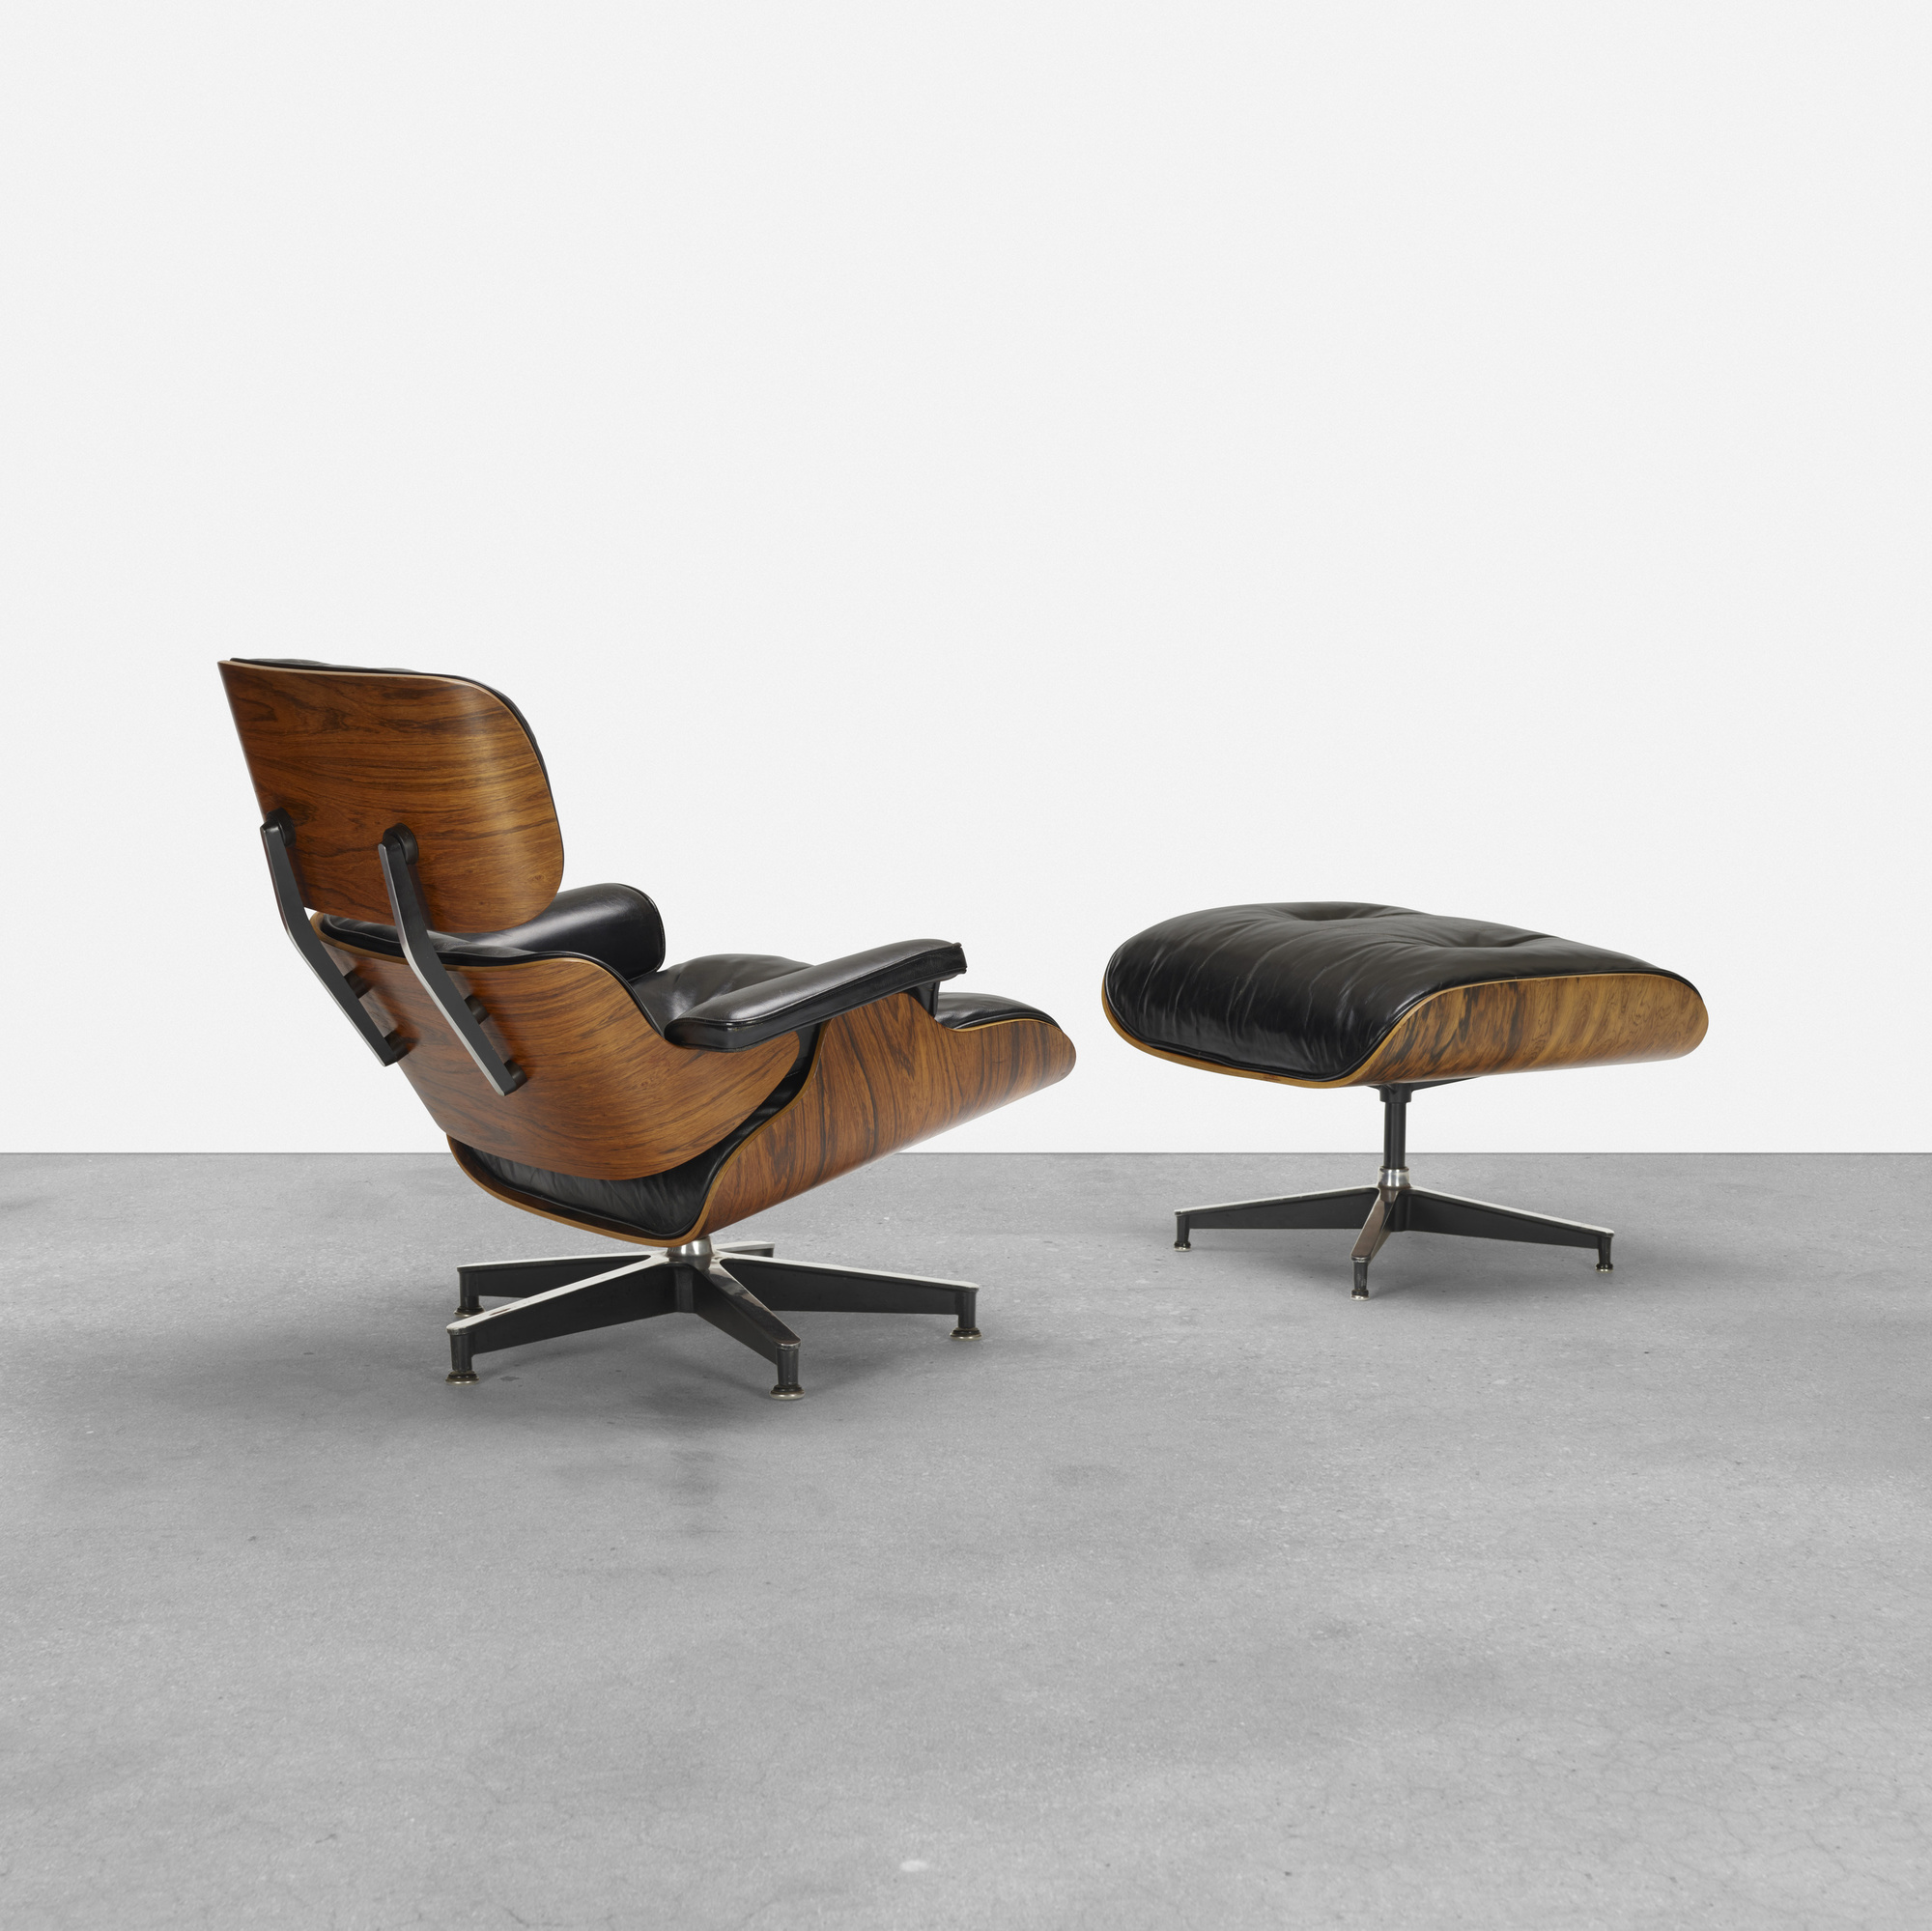 339: Charles and Ray Eames / 670 lounge chair and 671 ottoman (1 of 4)